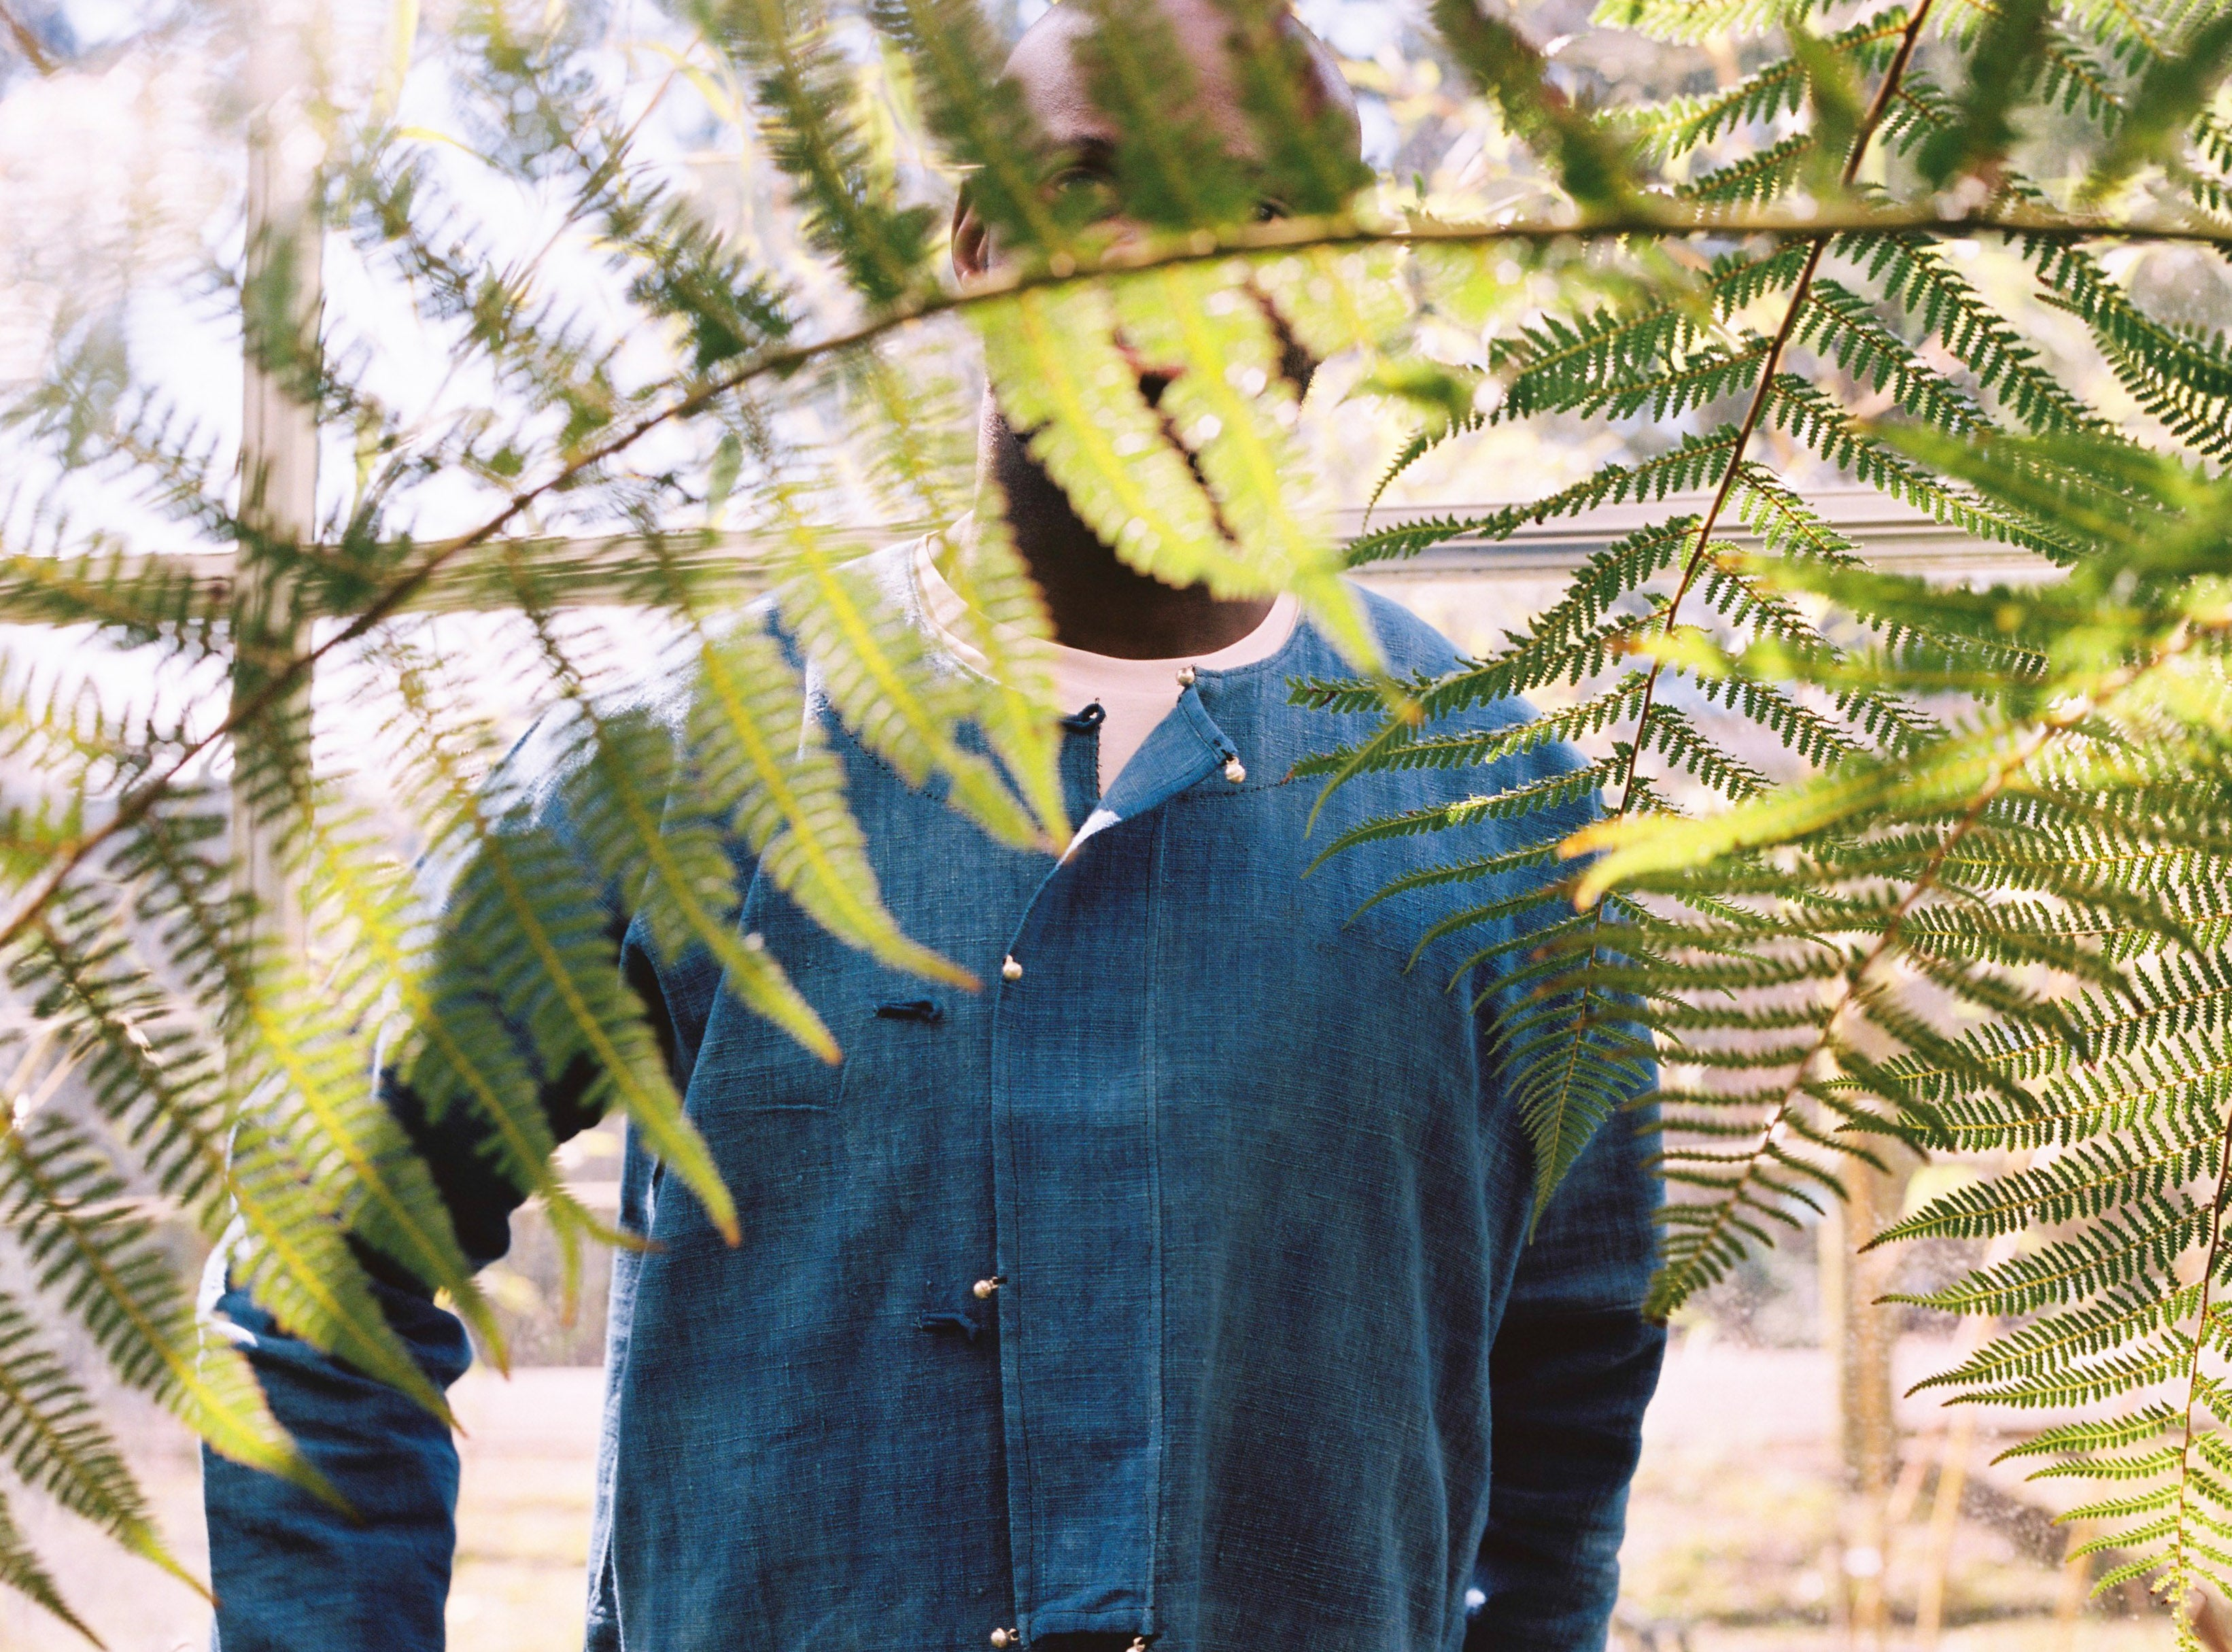 Indigo Jacket, natural dye, organic cotton